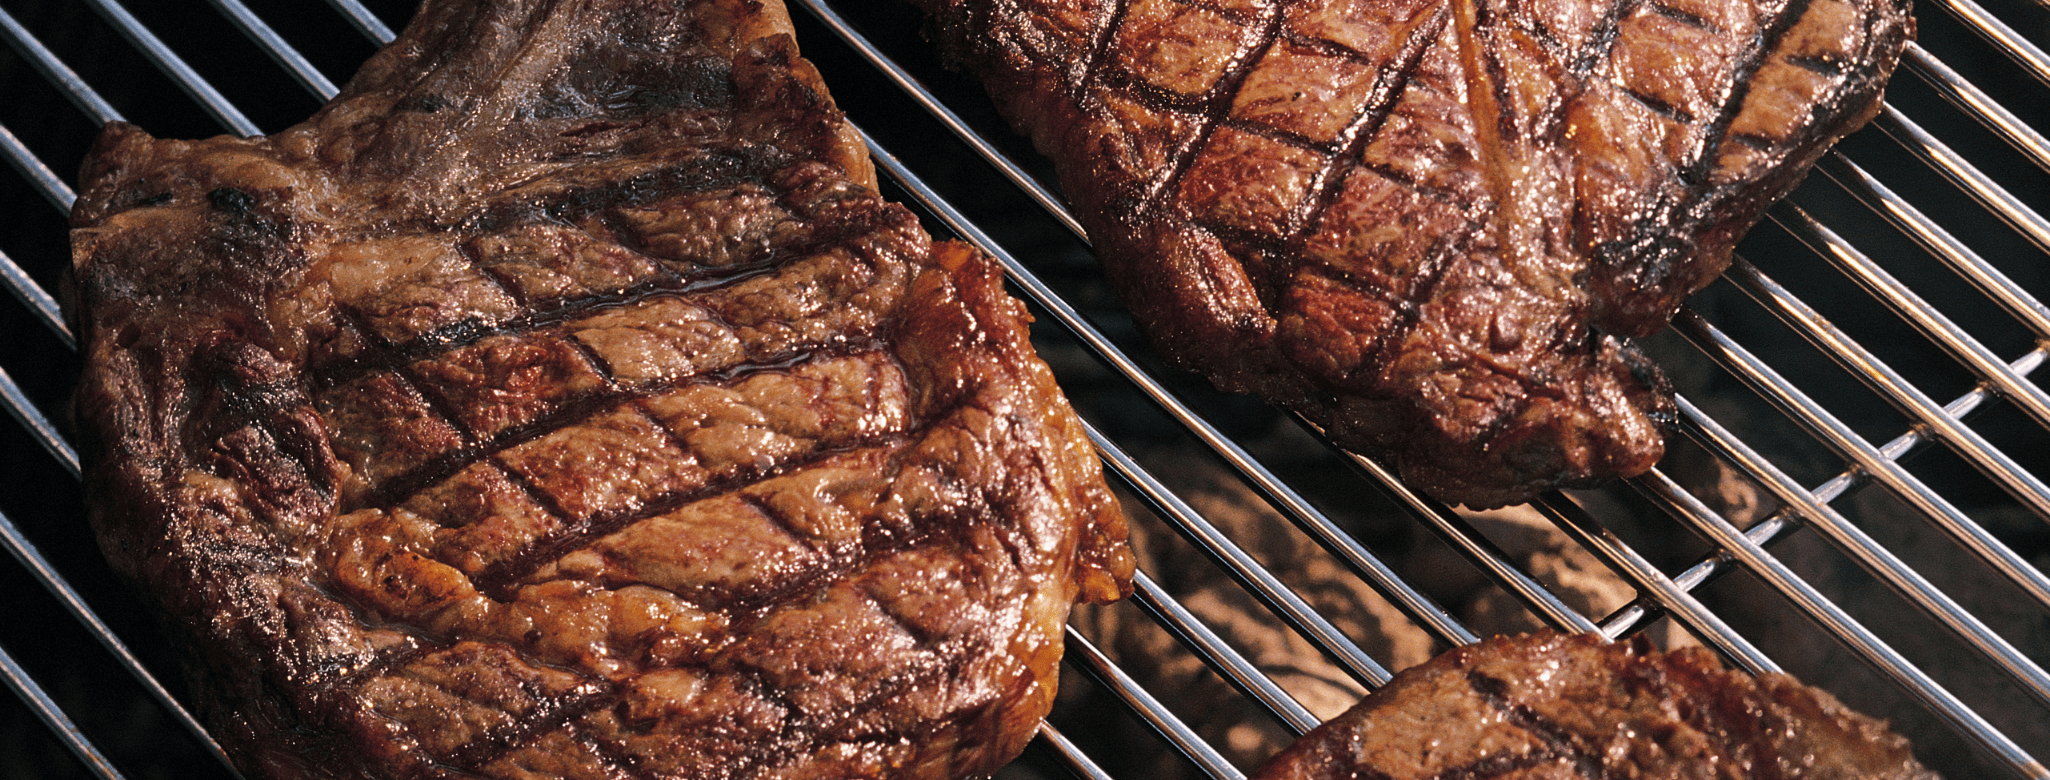 6 Simple Steps to a Perfectly Grilled Steak